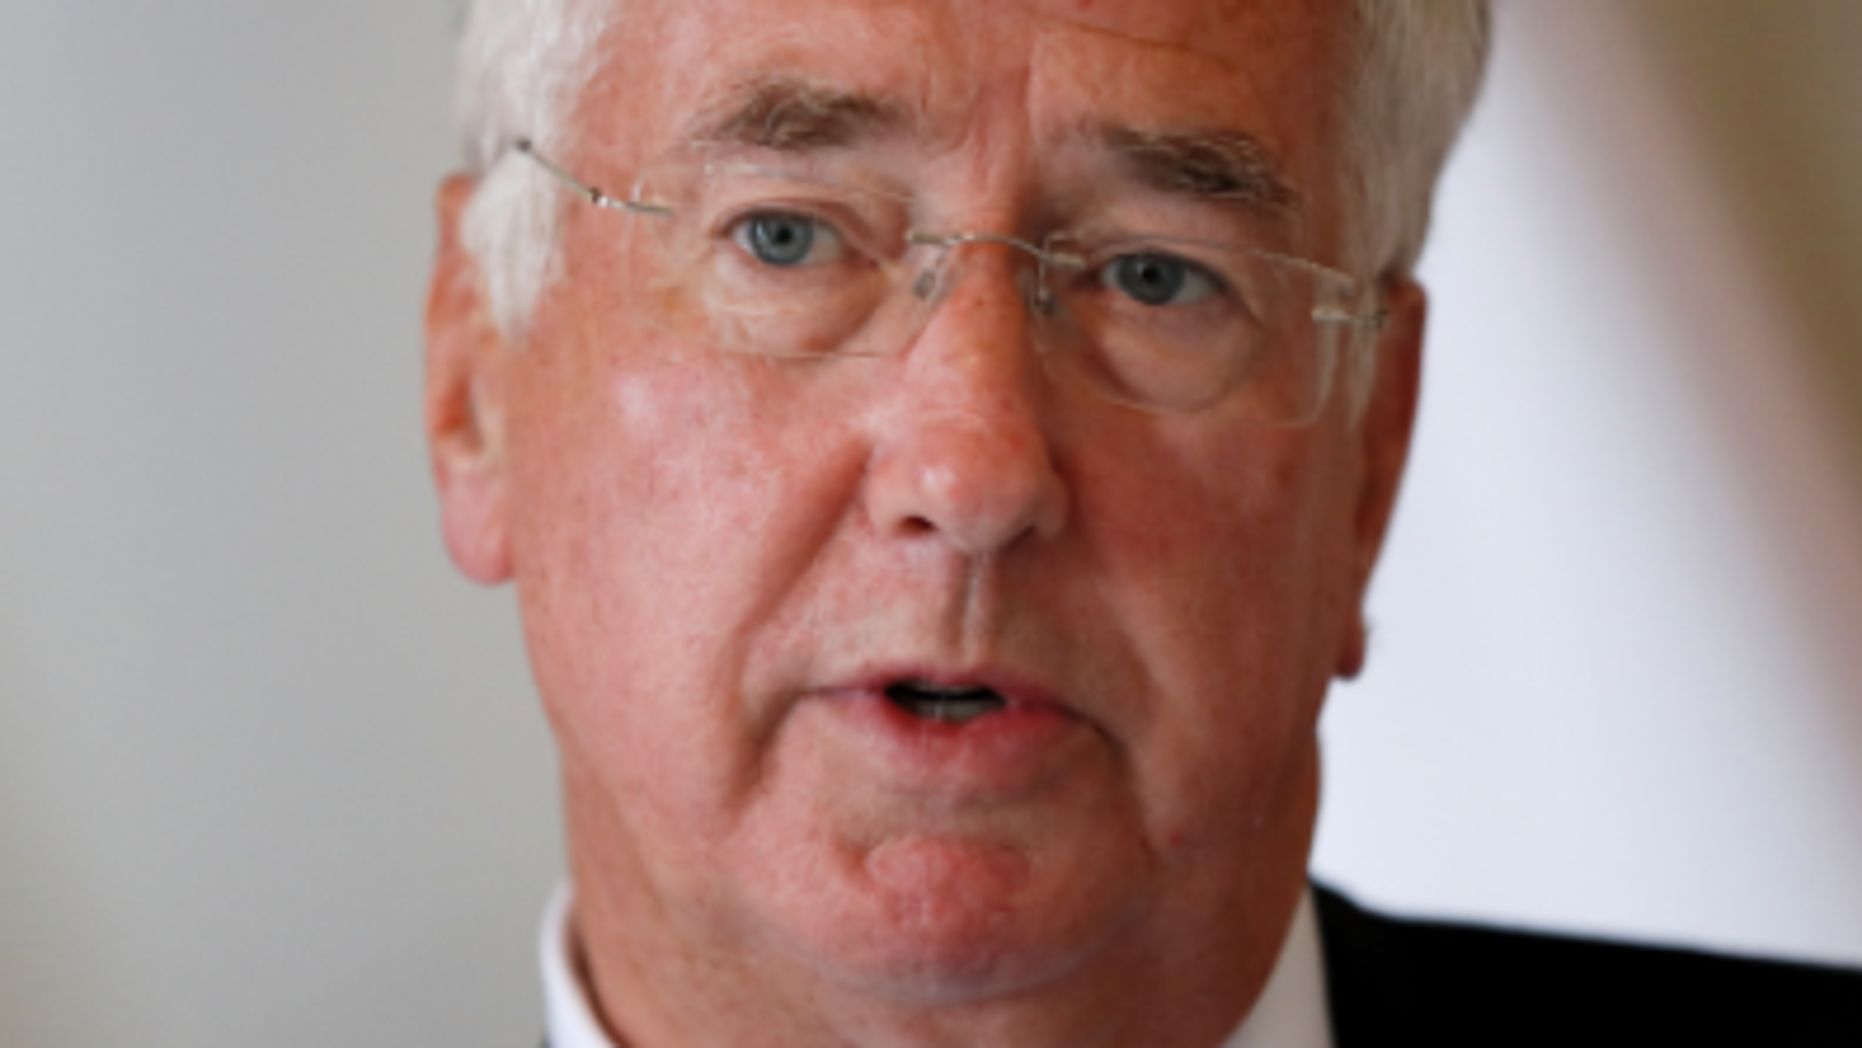 British defense secretary Michael Fallon resigned Wednesday after being accused of inappropriately touching a journalist in 2002.